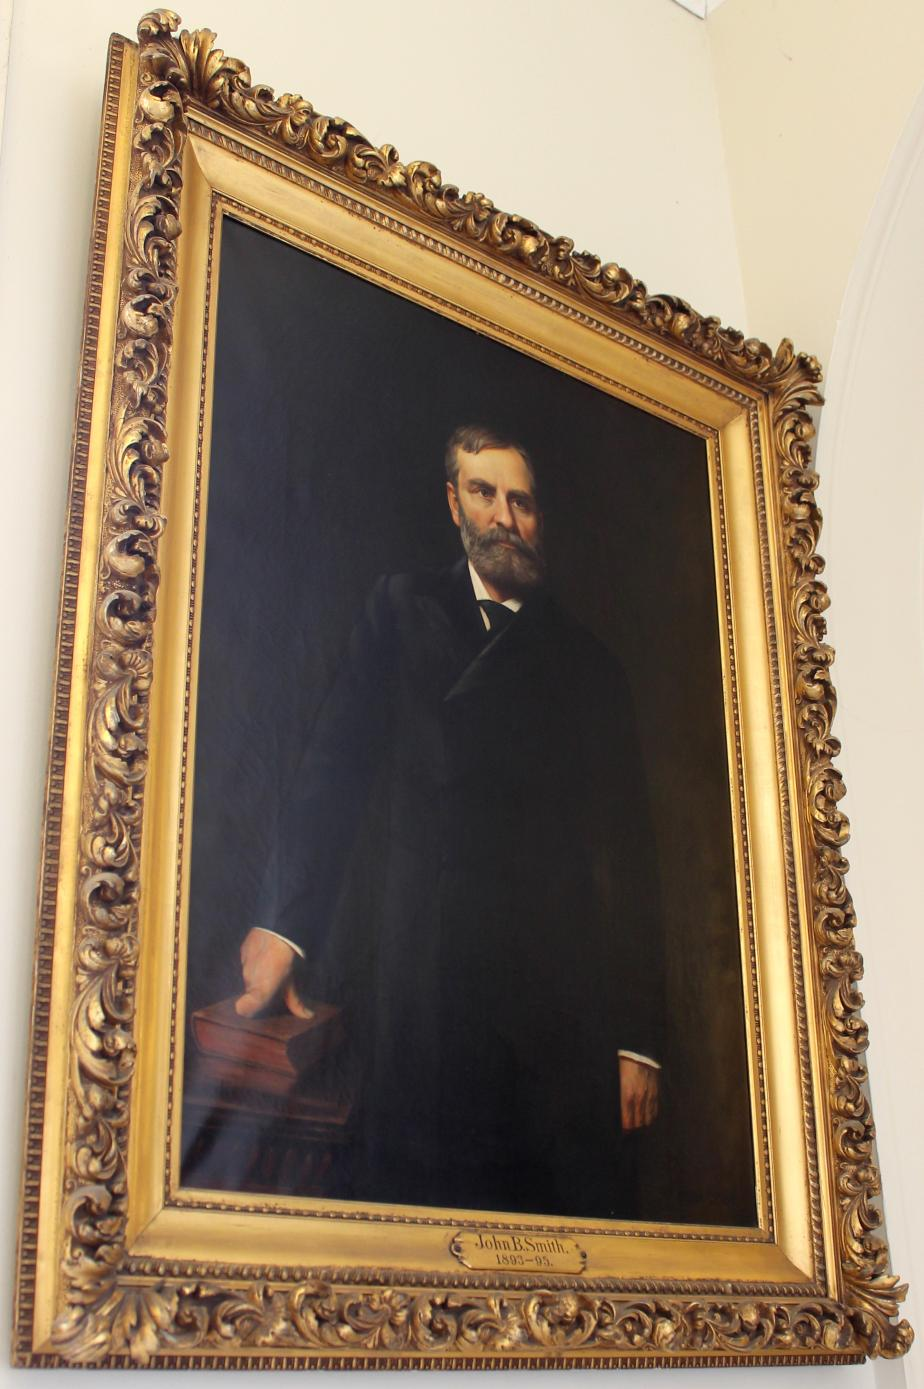 Governor John Butler Smith NH State House Portrait